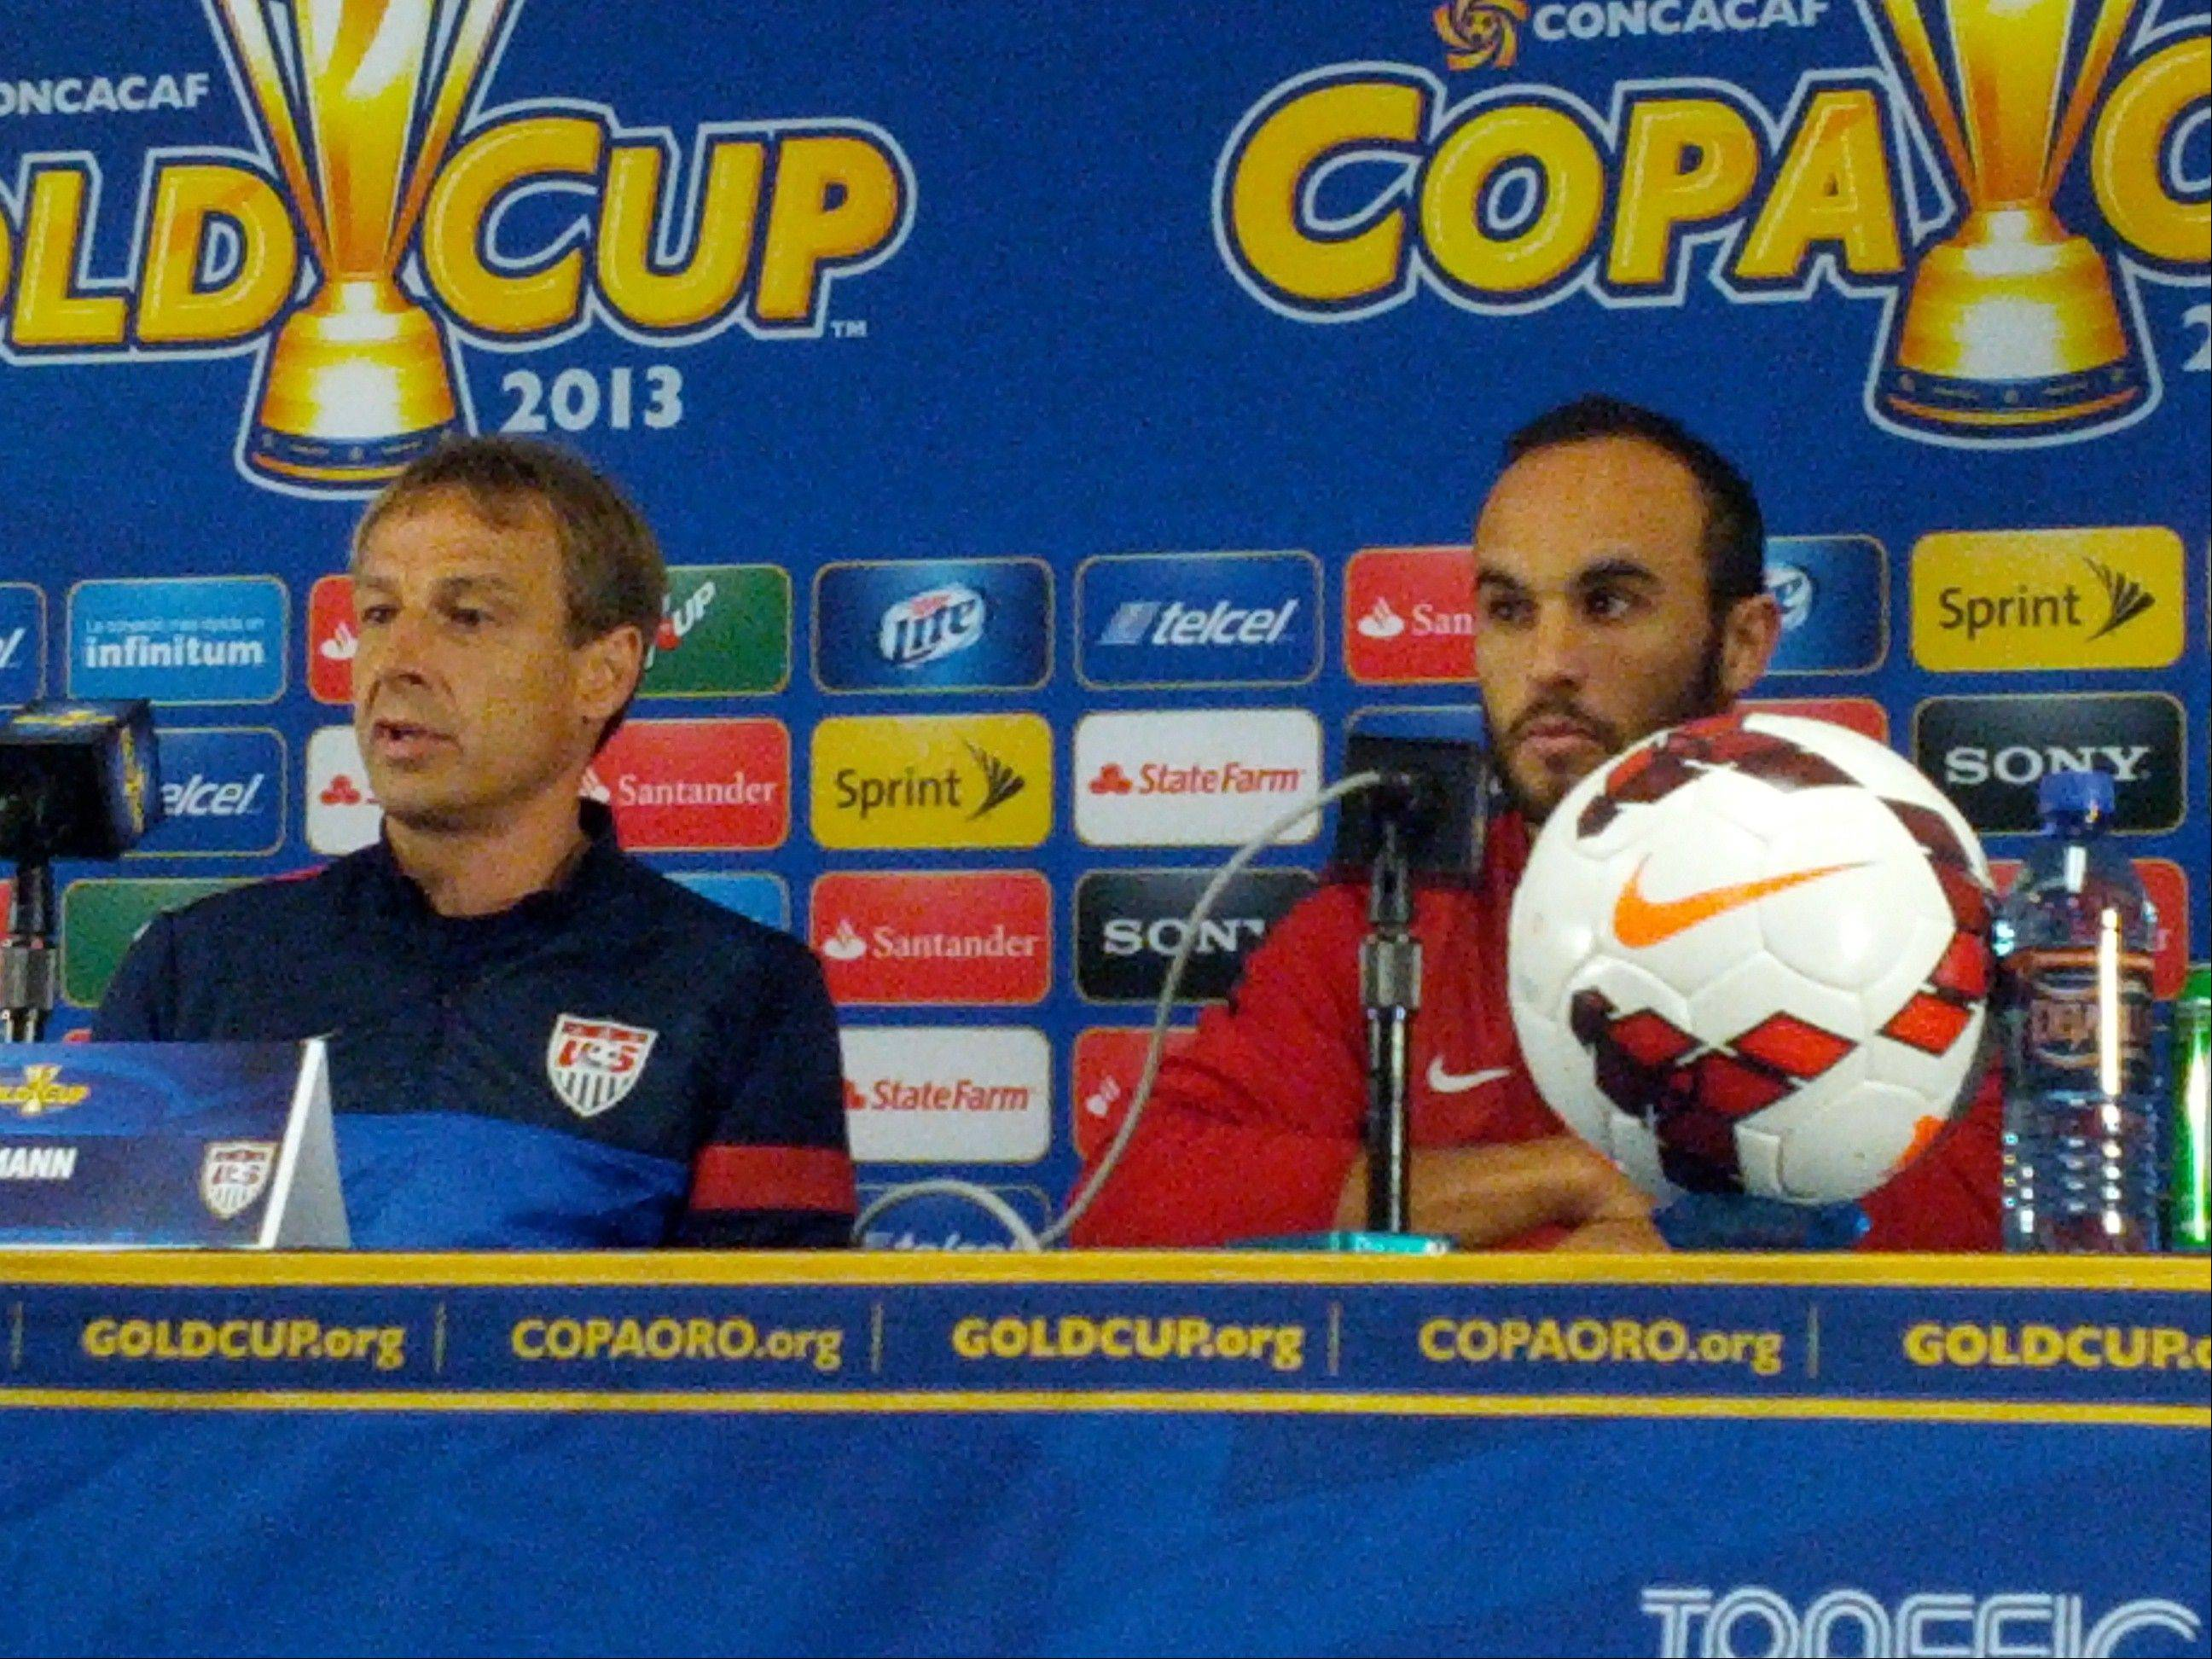 U.S. men's national team coach Jurgen Klinsmann, left, and forward/midfielder Landon Donovan meet the media Saturday afternoon at Soldier Field ahead of Sunday's Gold Cup final in Chicago.